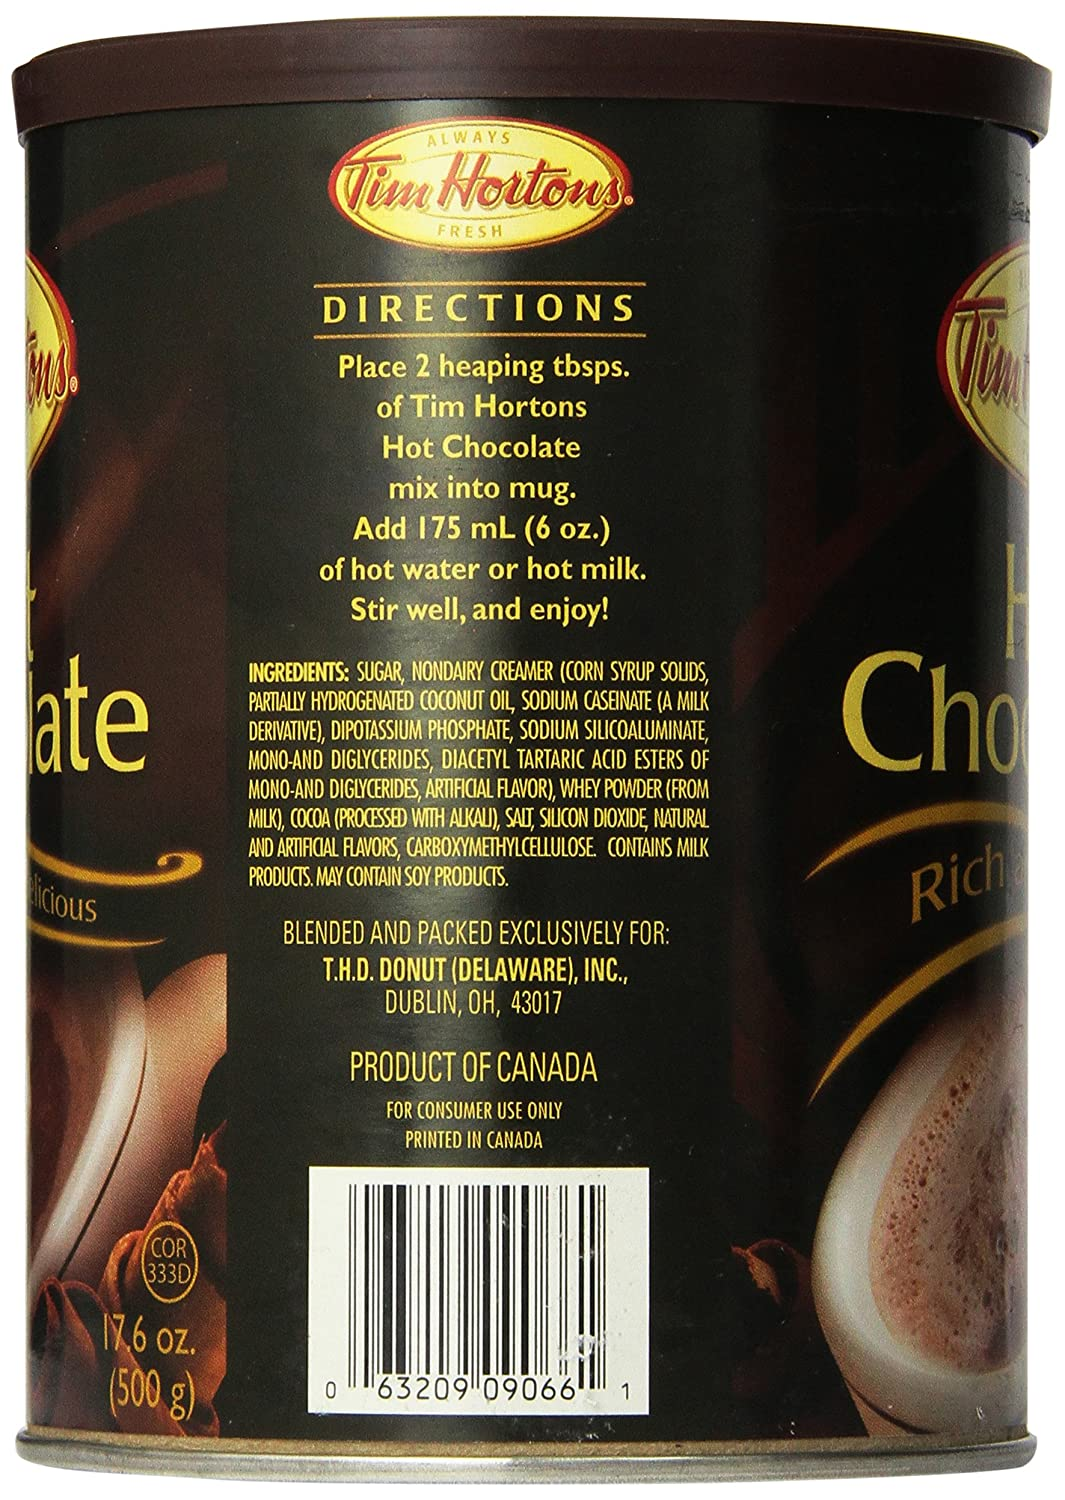 Amazon.com : Tim Hortons Can of Hot Chocolate 500g, 17.6oz : Hot ...